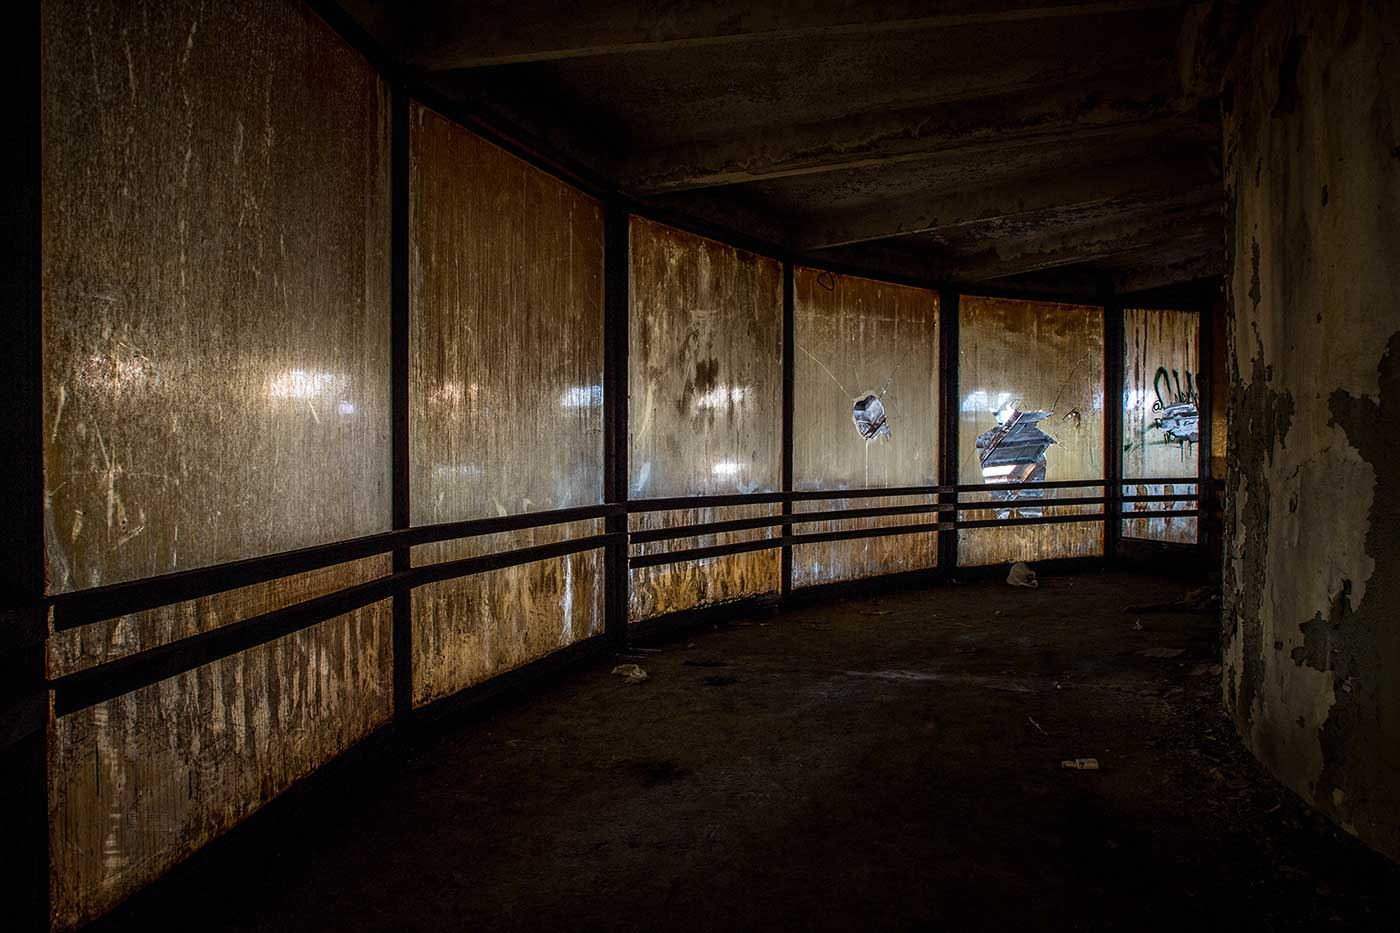 The glass windows of the panopticon-style platform at the top of the central pillar are discoloured by years' worth of accumulated dust and dirt. Autobus Park №7: the abandoned bus depot in Kyiv, Ukraine.